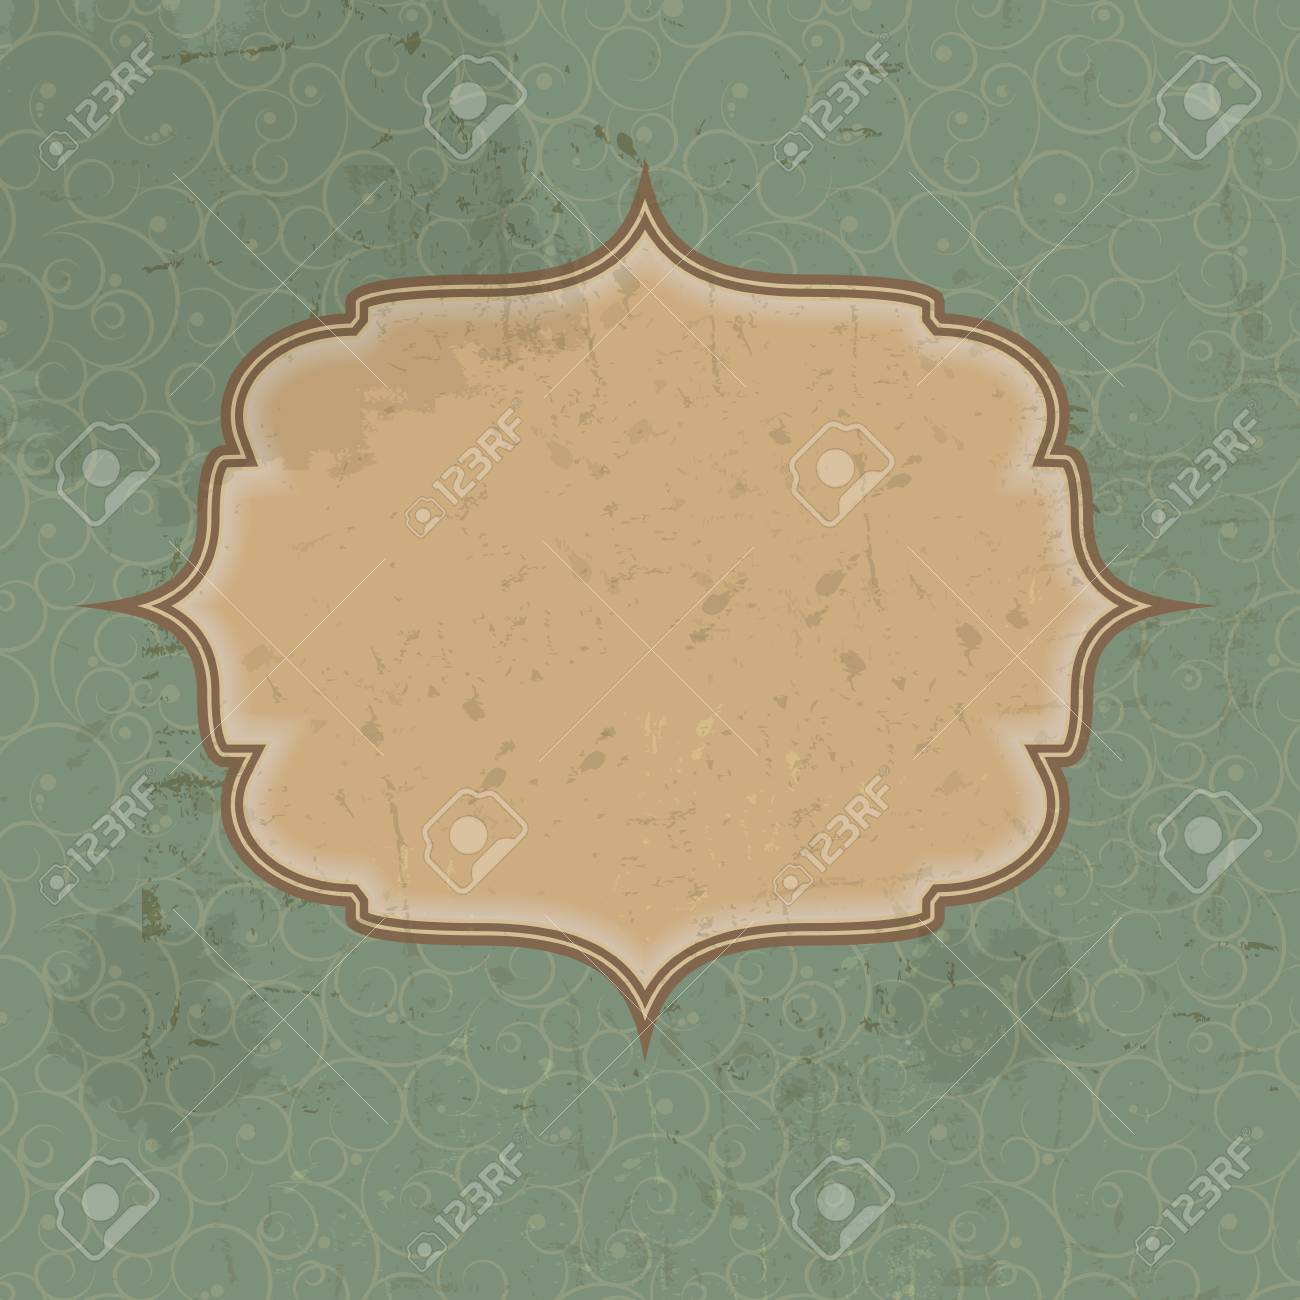 Retro vintage grunge background illustration Stock Vector - 15190673